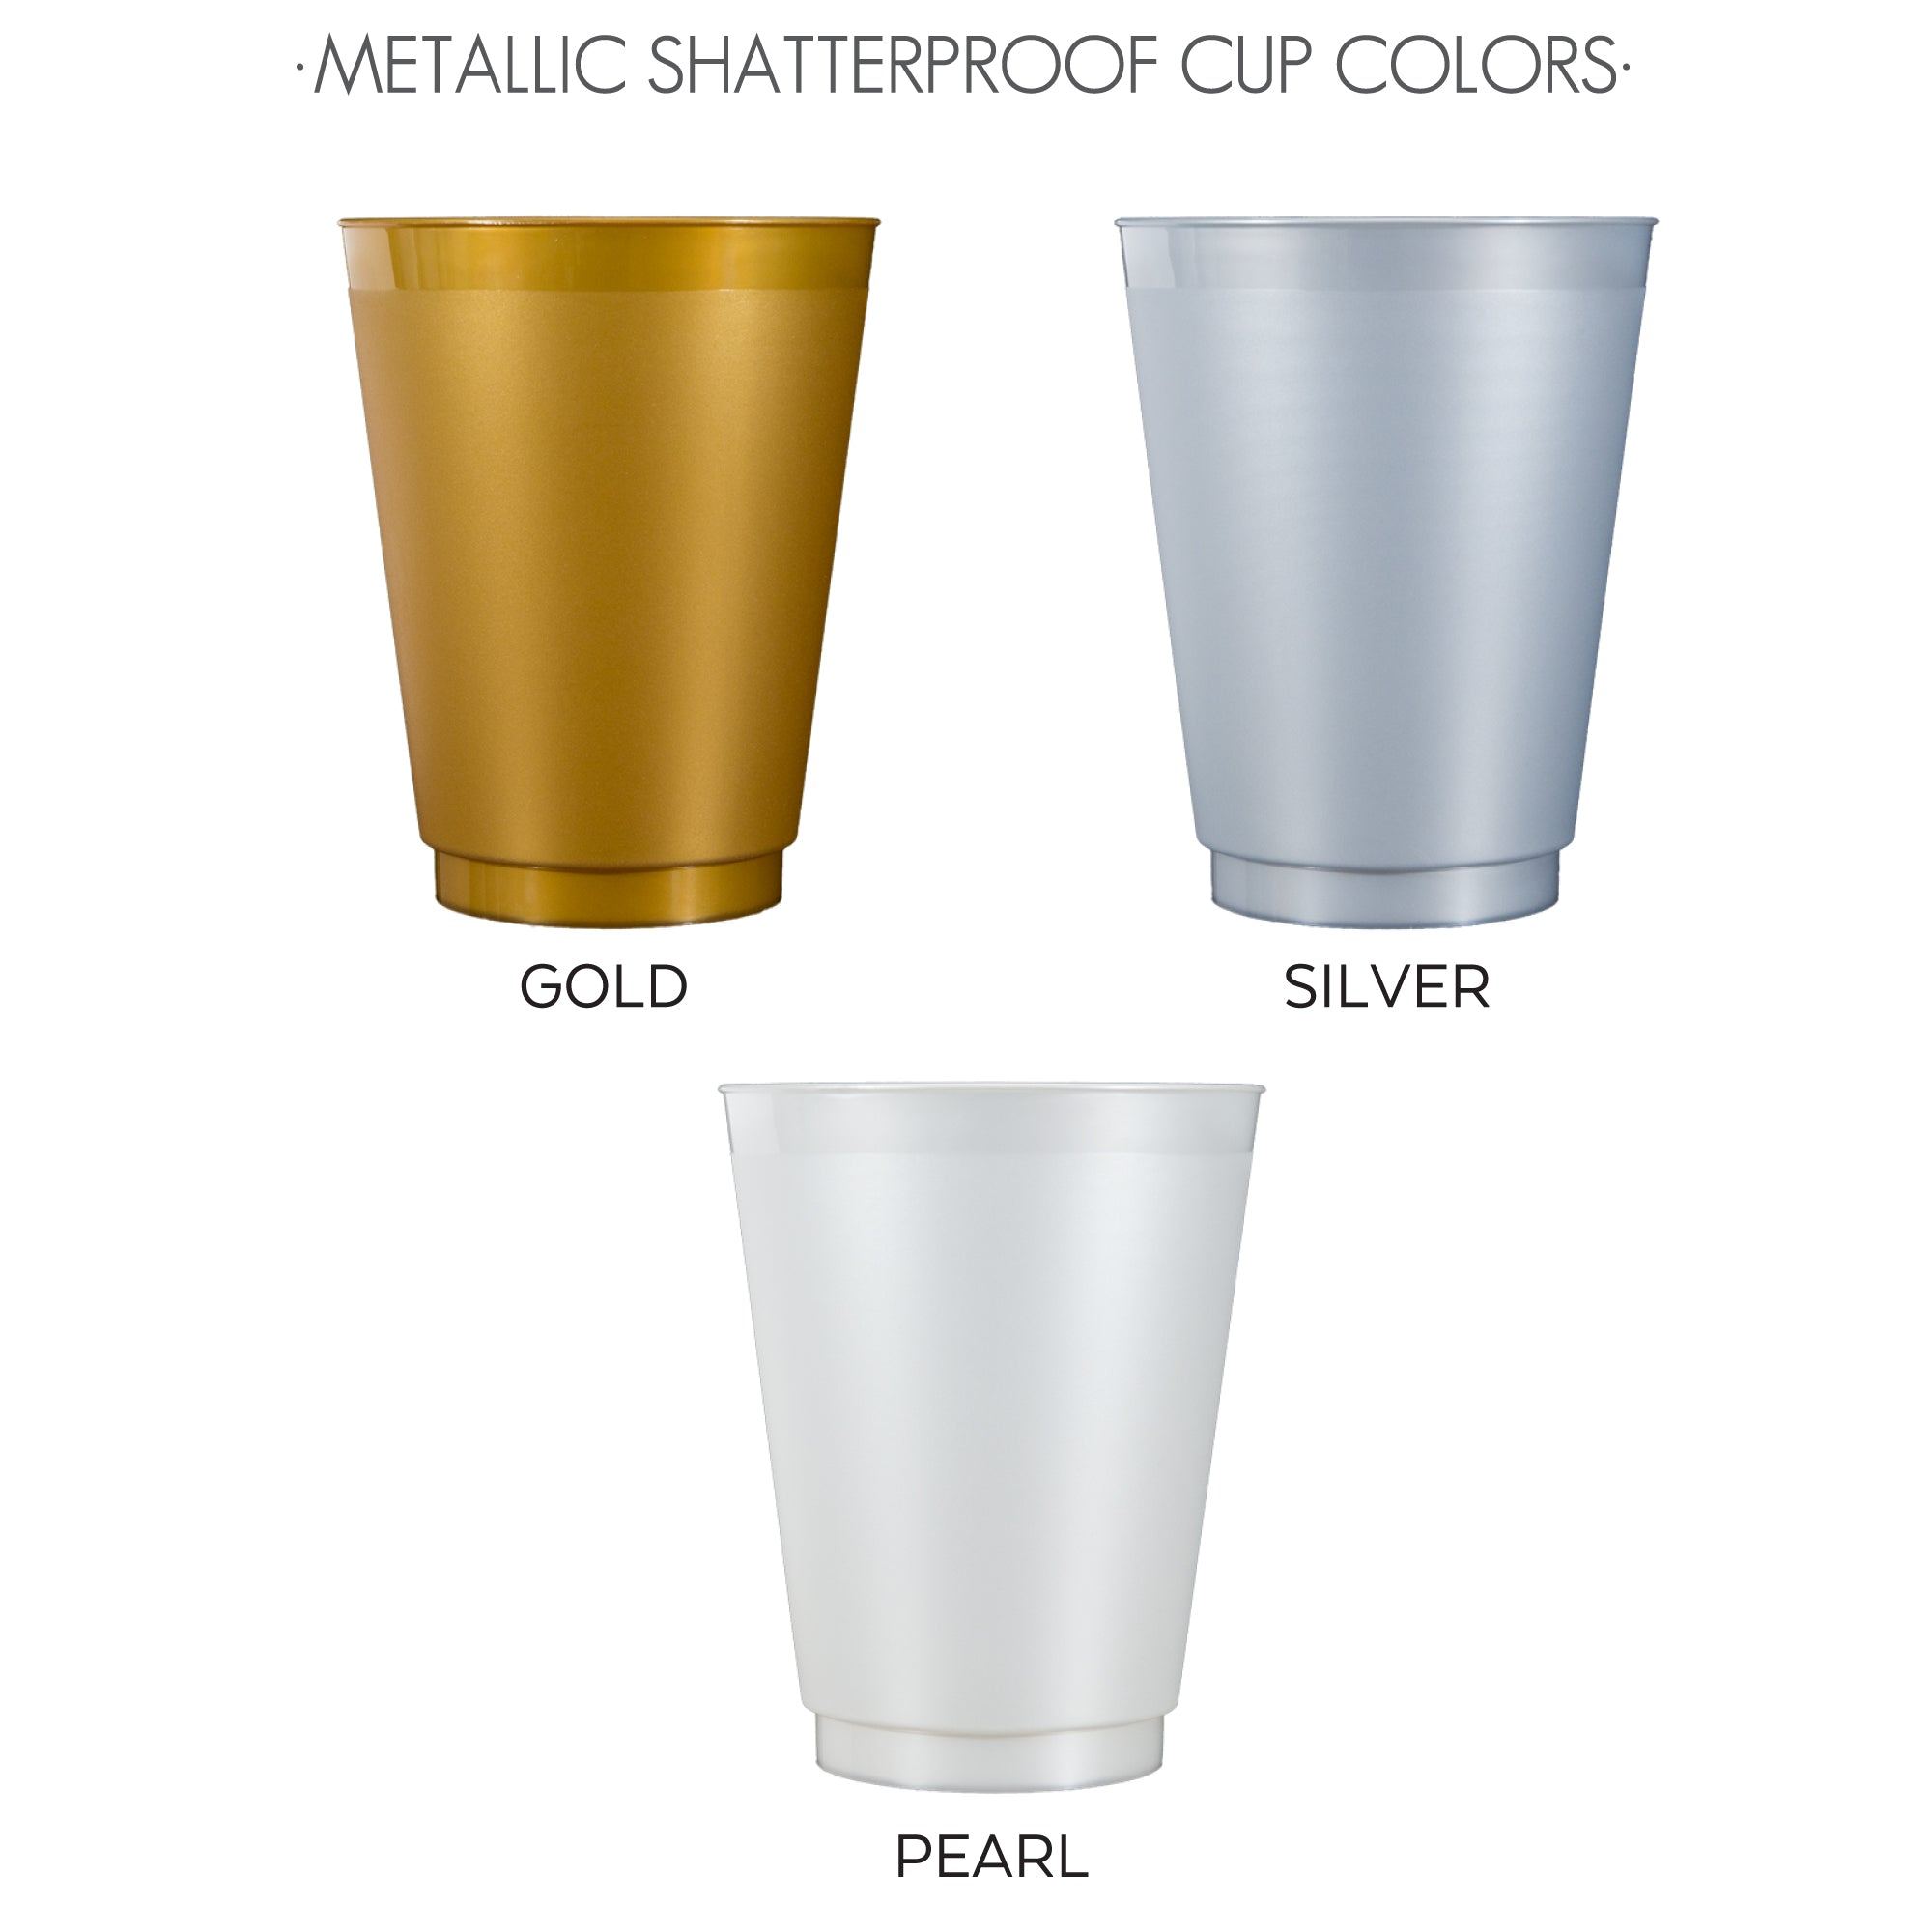 metallic shatterproof cup colors